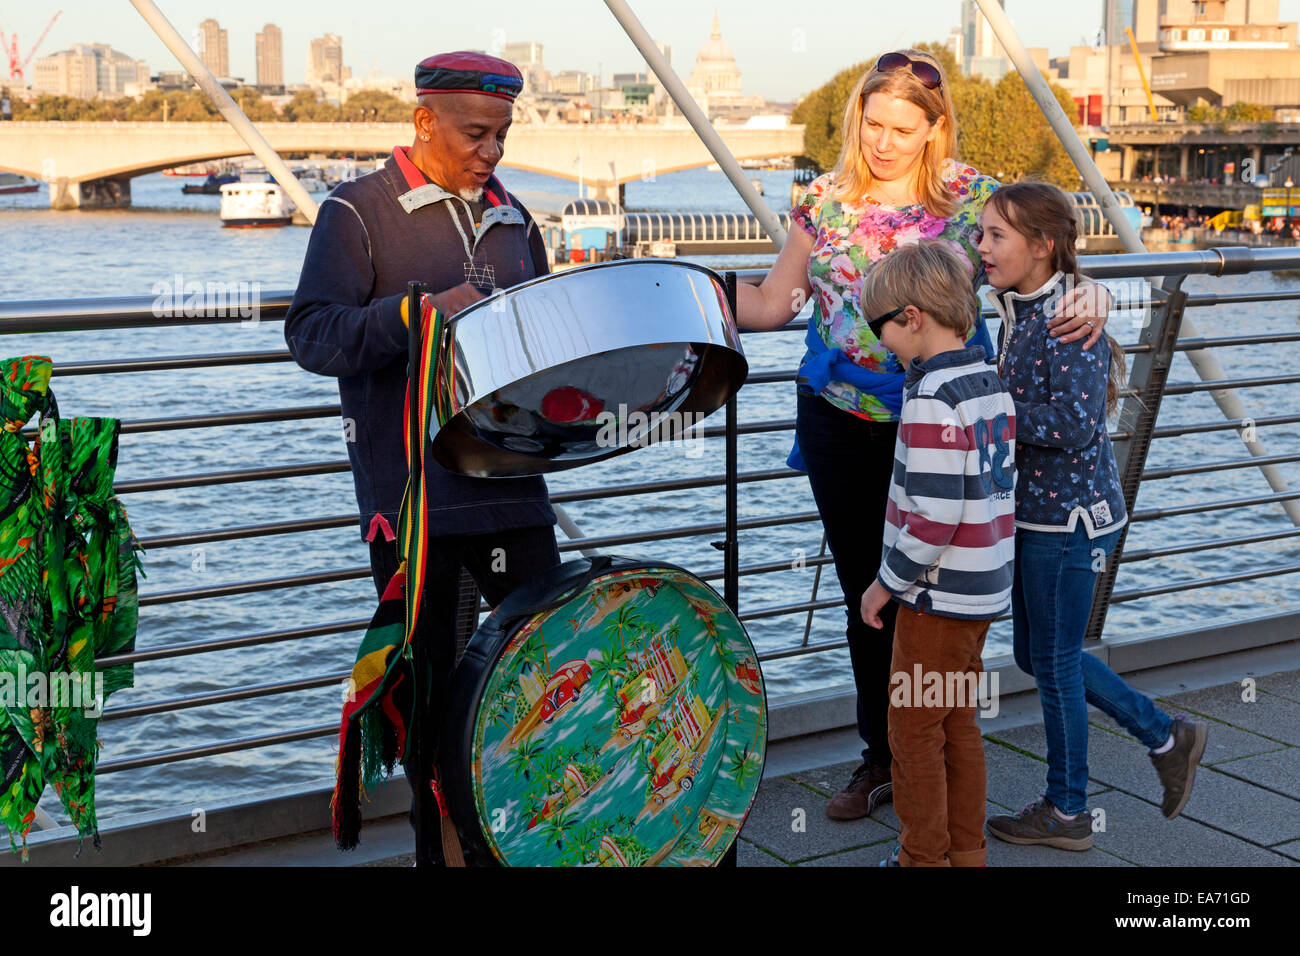 steel-drummer-playing-for-two-children-on-the-golden-jubilee-bridge-EA71GD.jpg